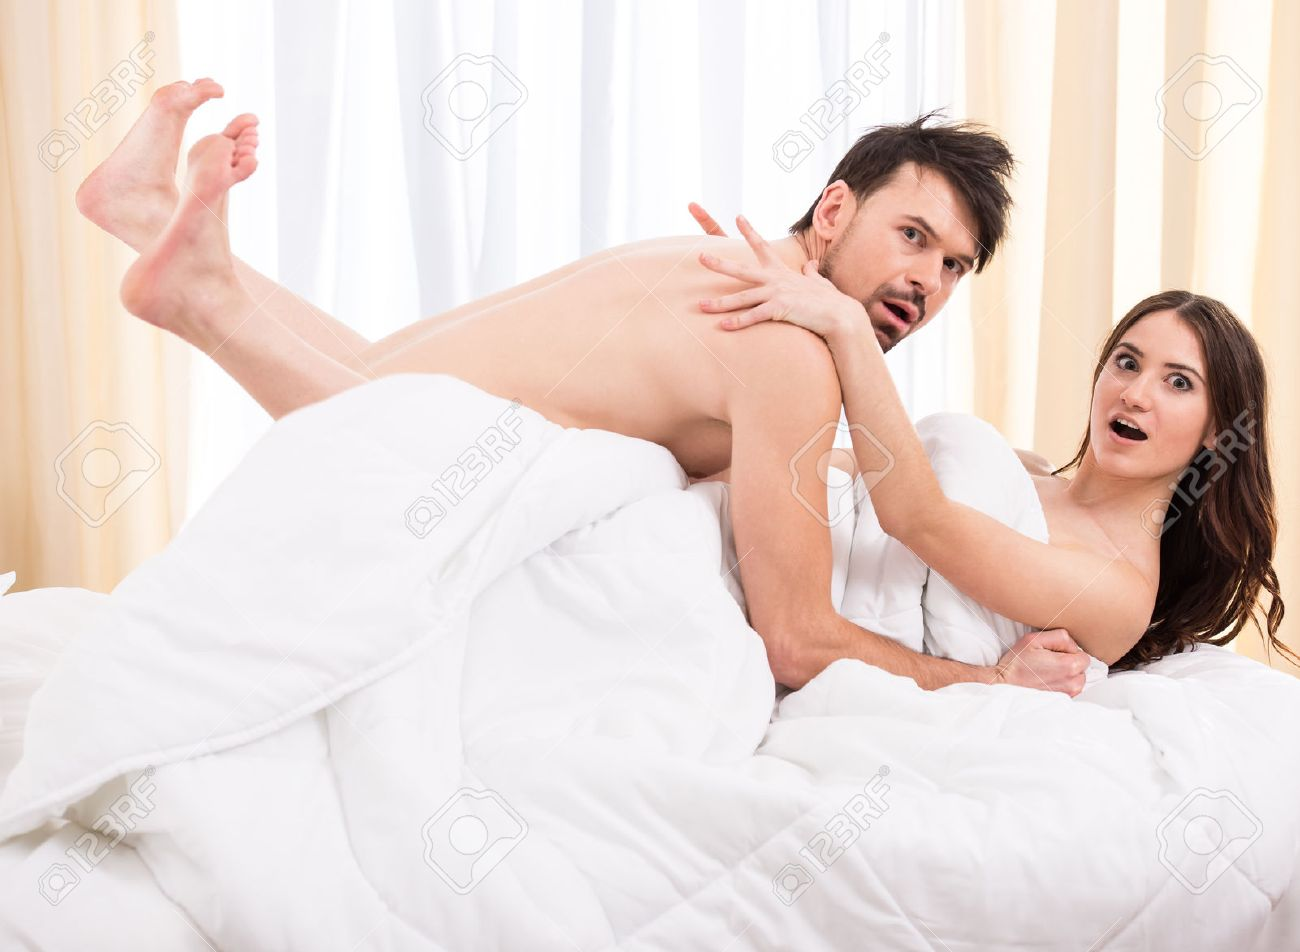 Stock Photo   Young love couple in bed  romantic scene in bedroom